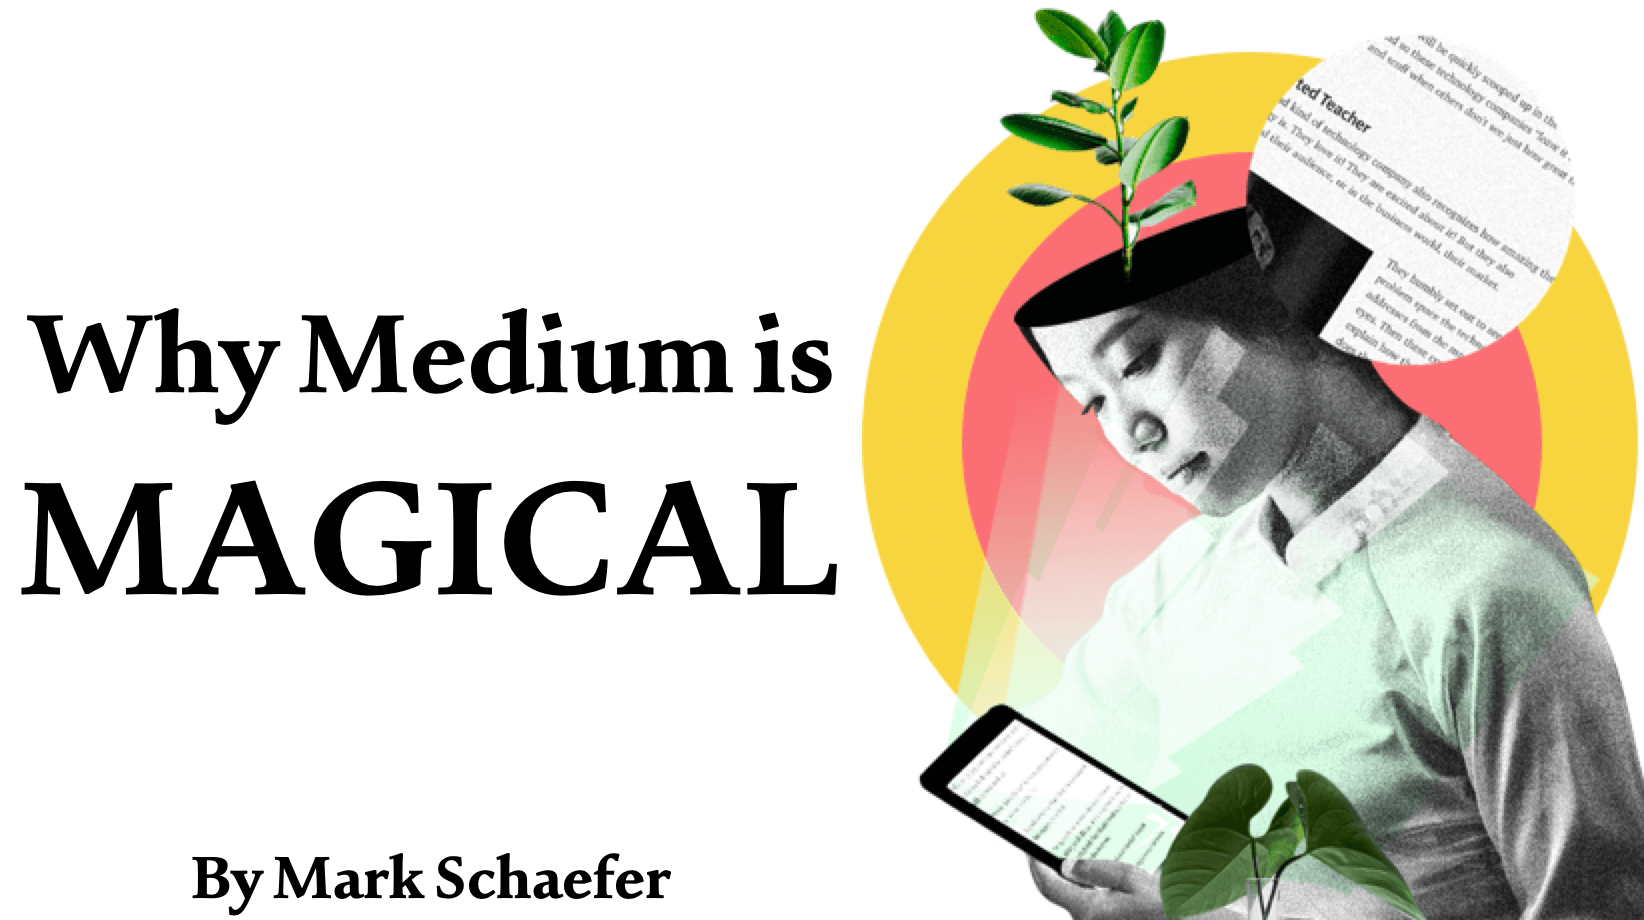 Why you need to climb aboard Medium, the magical home of the written word